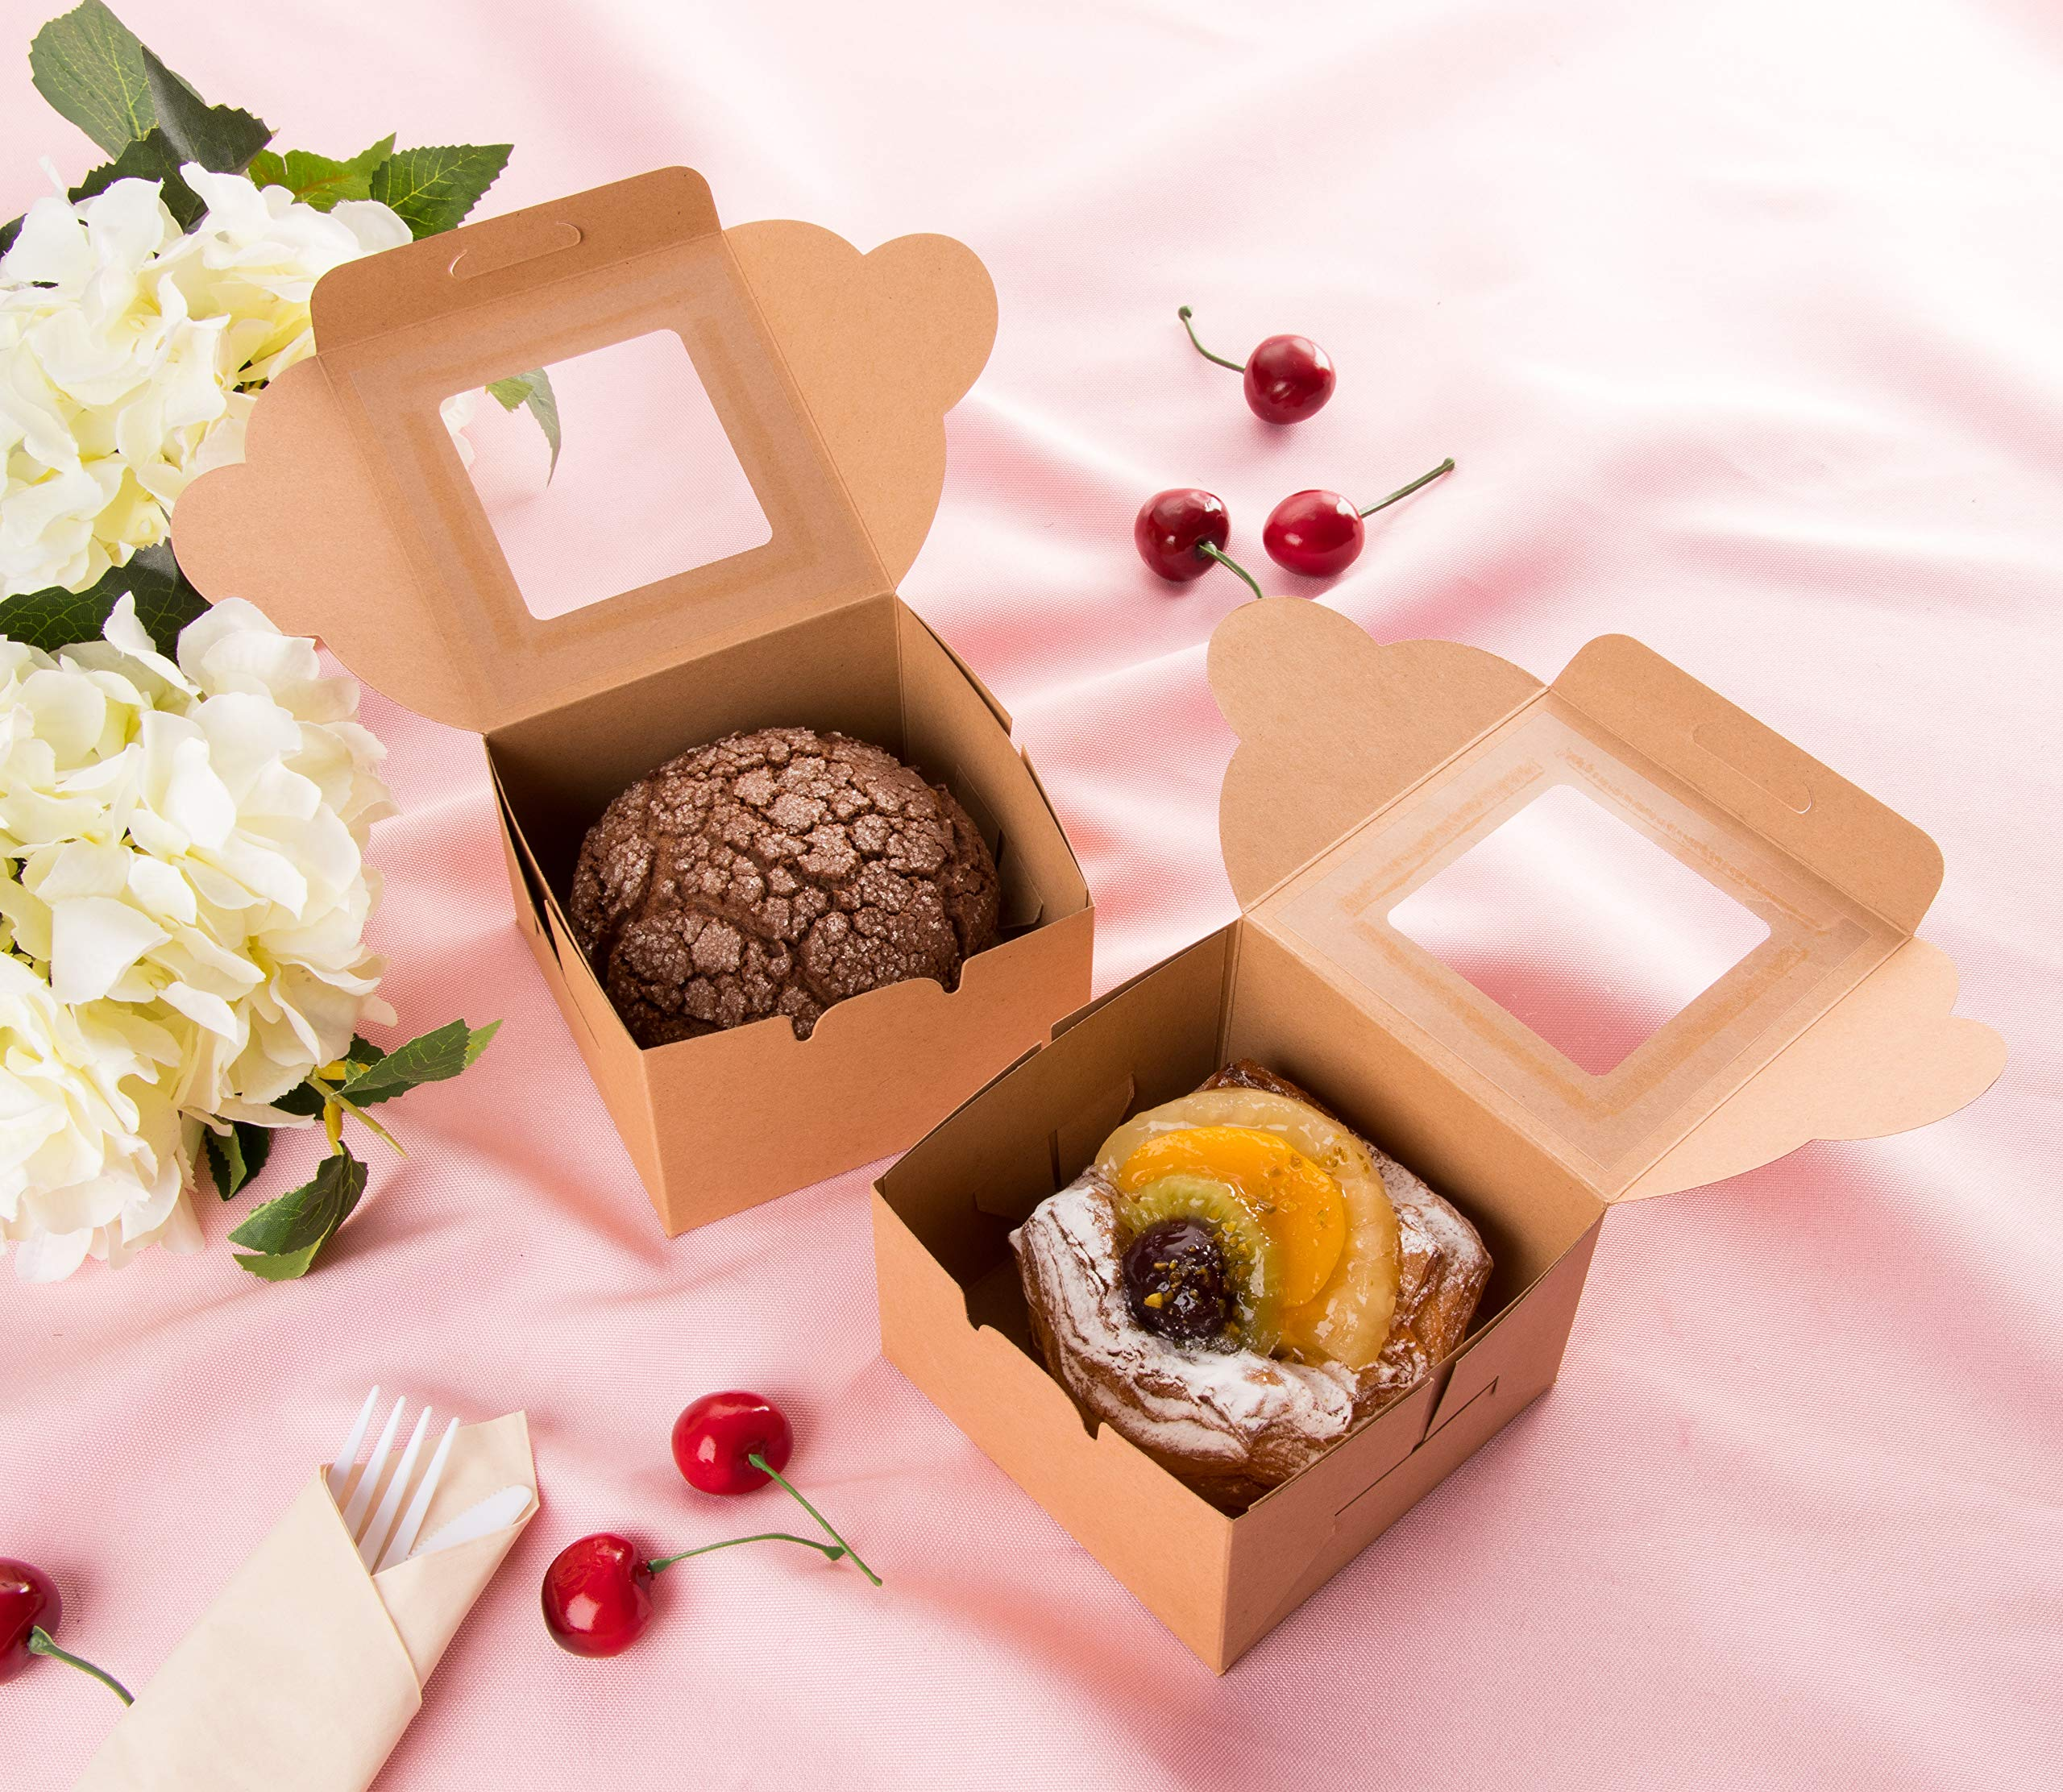 Kraft Paper Bakery Boxes - 50-Pack Single Pastry Box 4-Inch Packaging with Clear Display Window, Donut, Mini Cake, Pie Slice, Dessert Disposable Take-Out Container, Holds 1, Brown, 4 x 2.3 x 4 Inches by Juvale (Image #2)